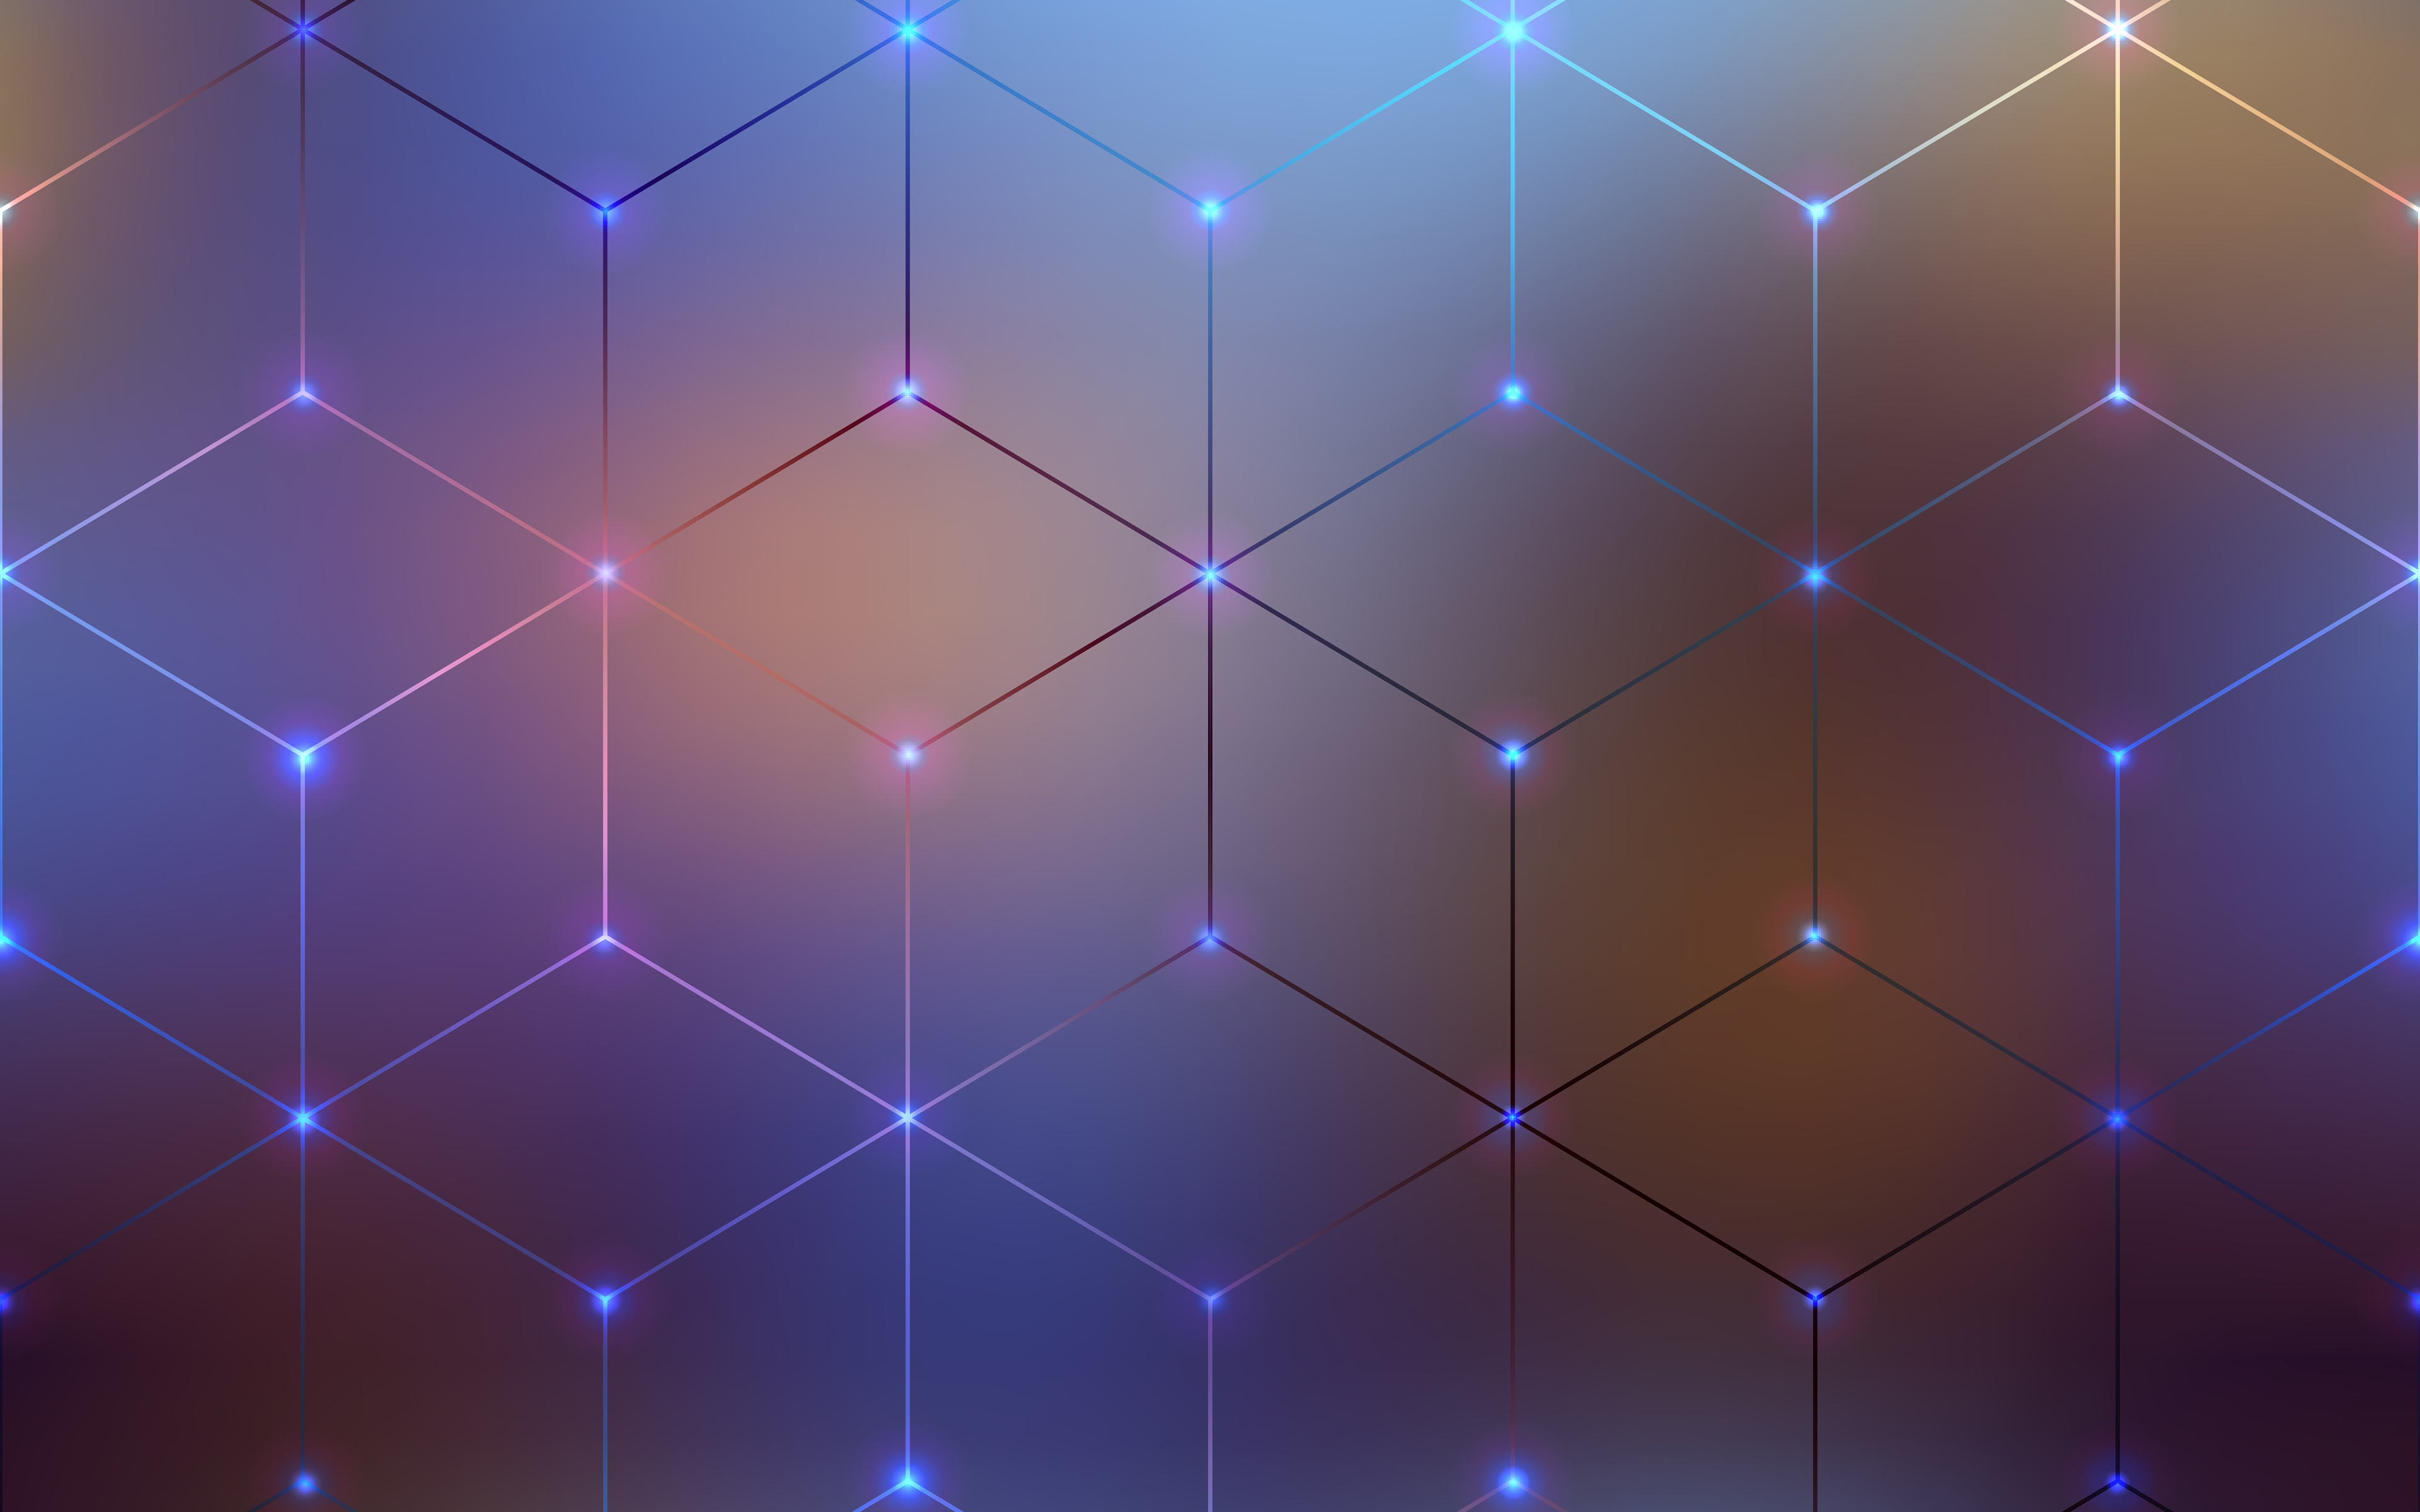 341 Geometry HD Wallpapers Background Images 3840x2400